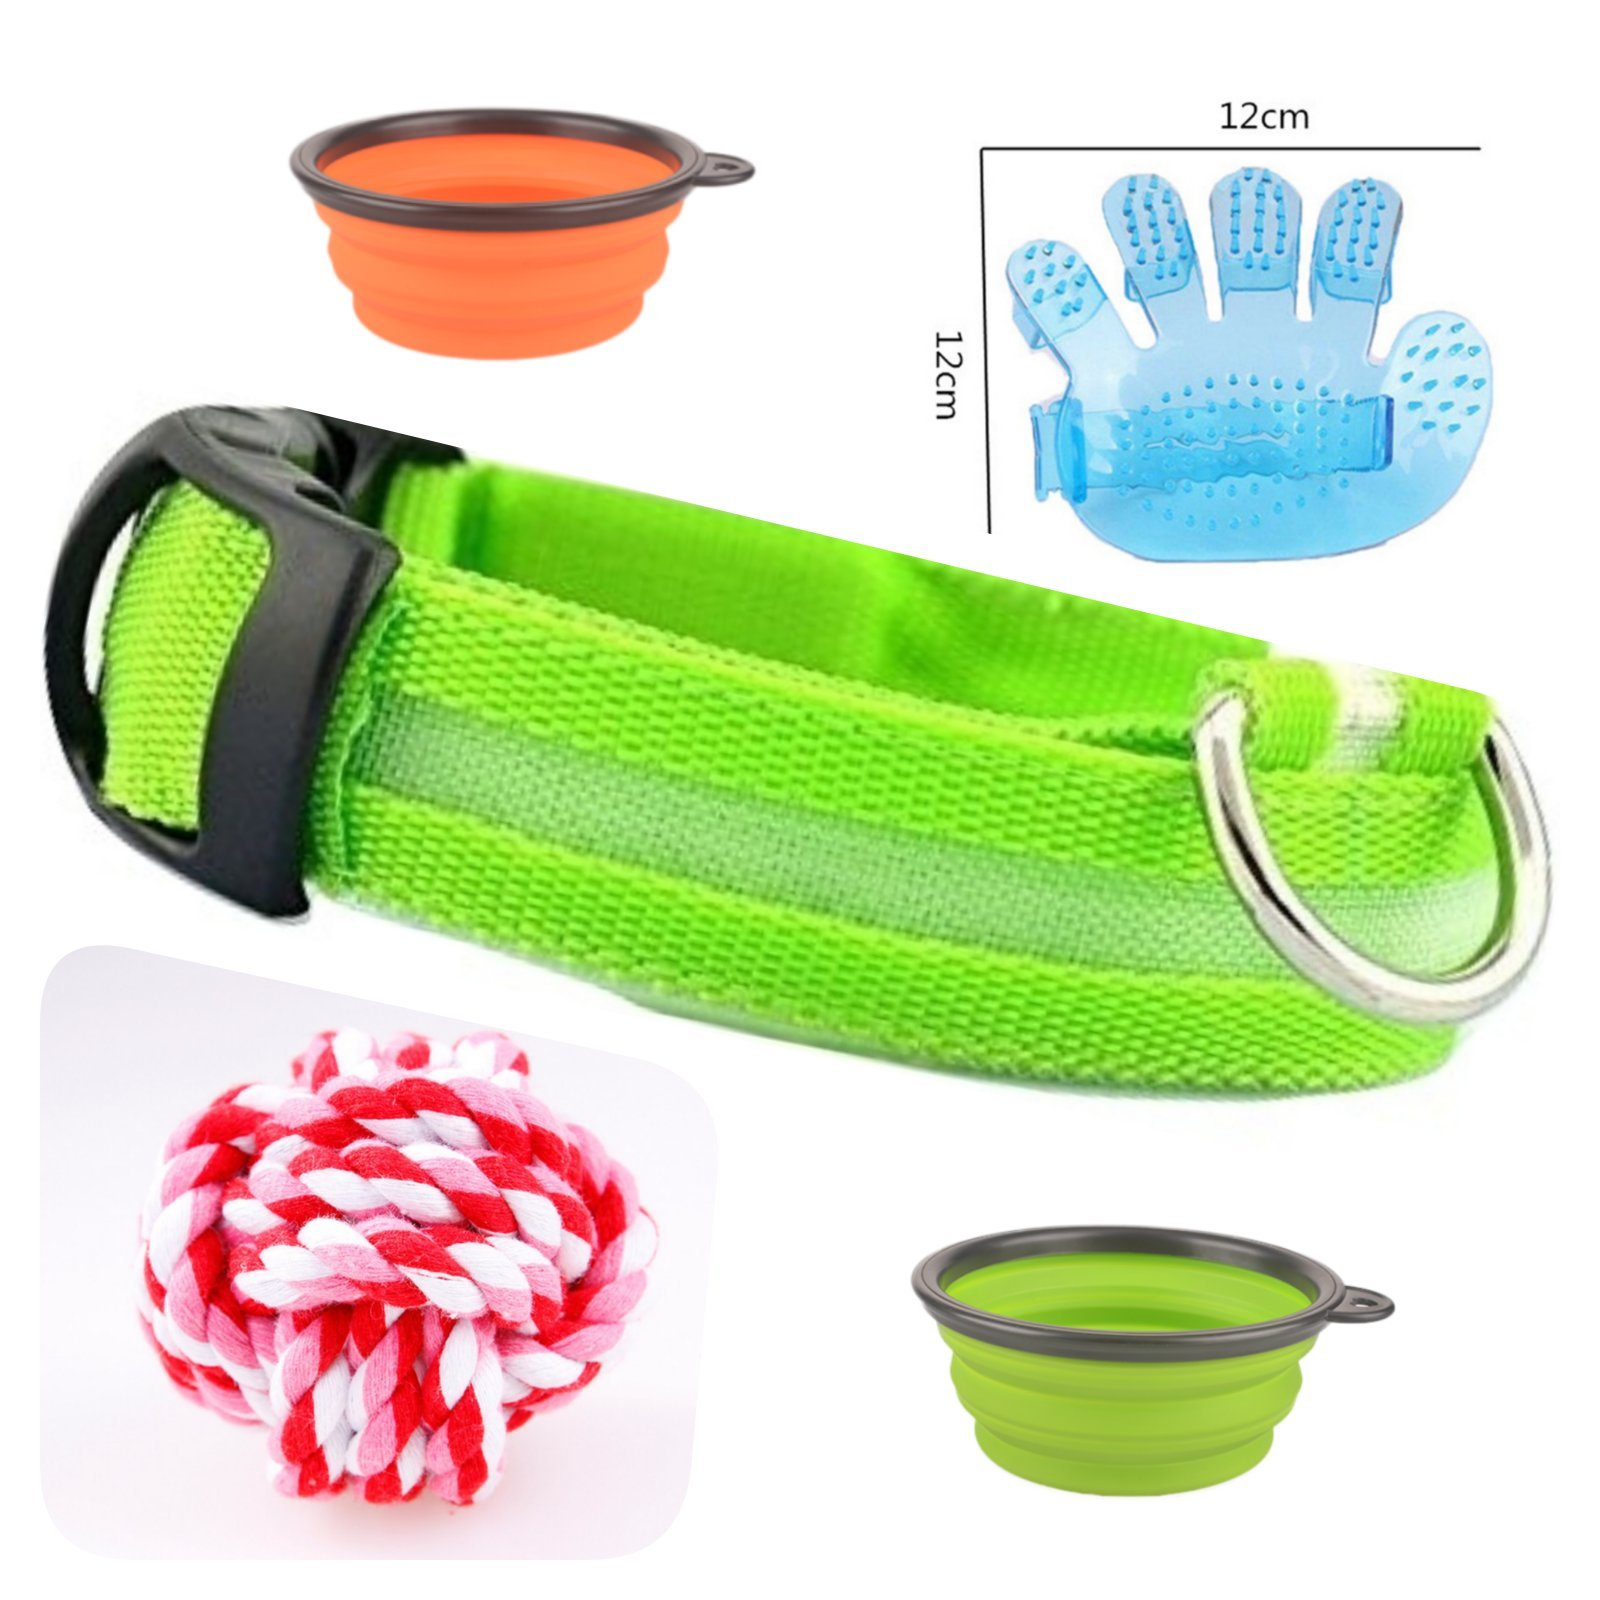 Ababetter All in ONE! 2 Collapsible Bowl Feeder for Dog with 2 carabiners. Collar led Light Flashing Grooming Glove Cotton Rope Toy.